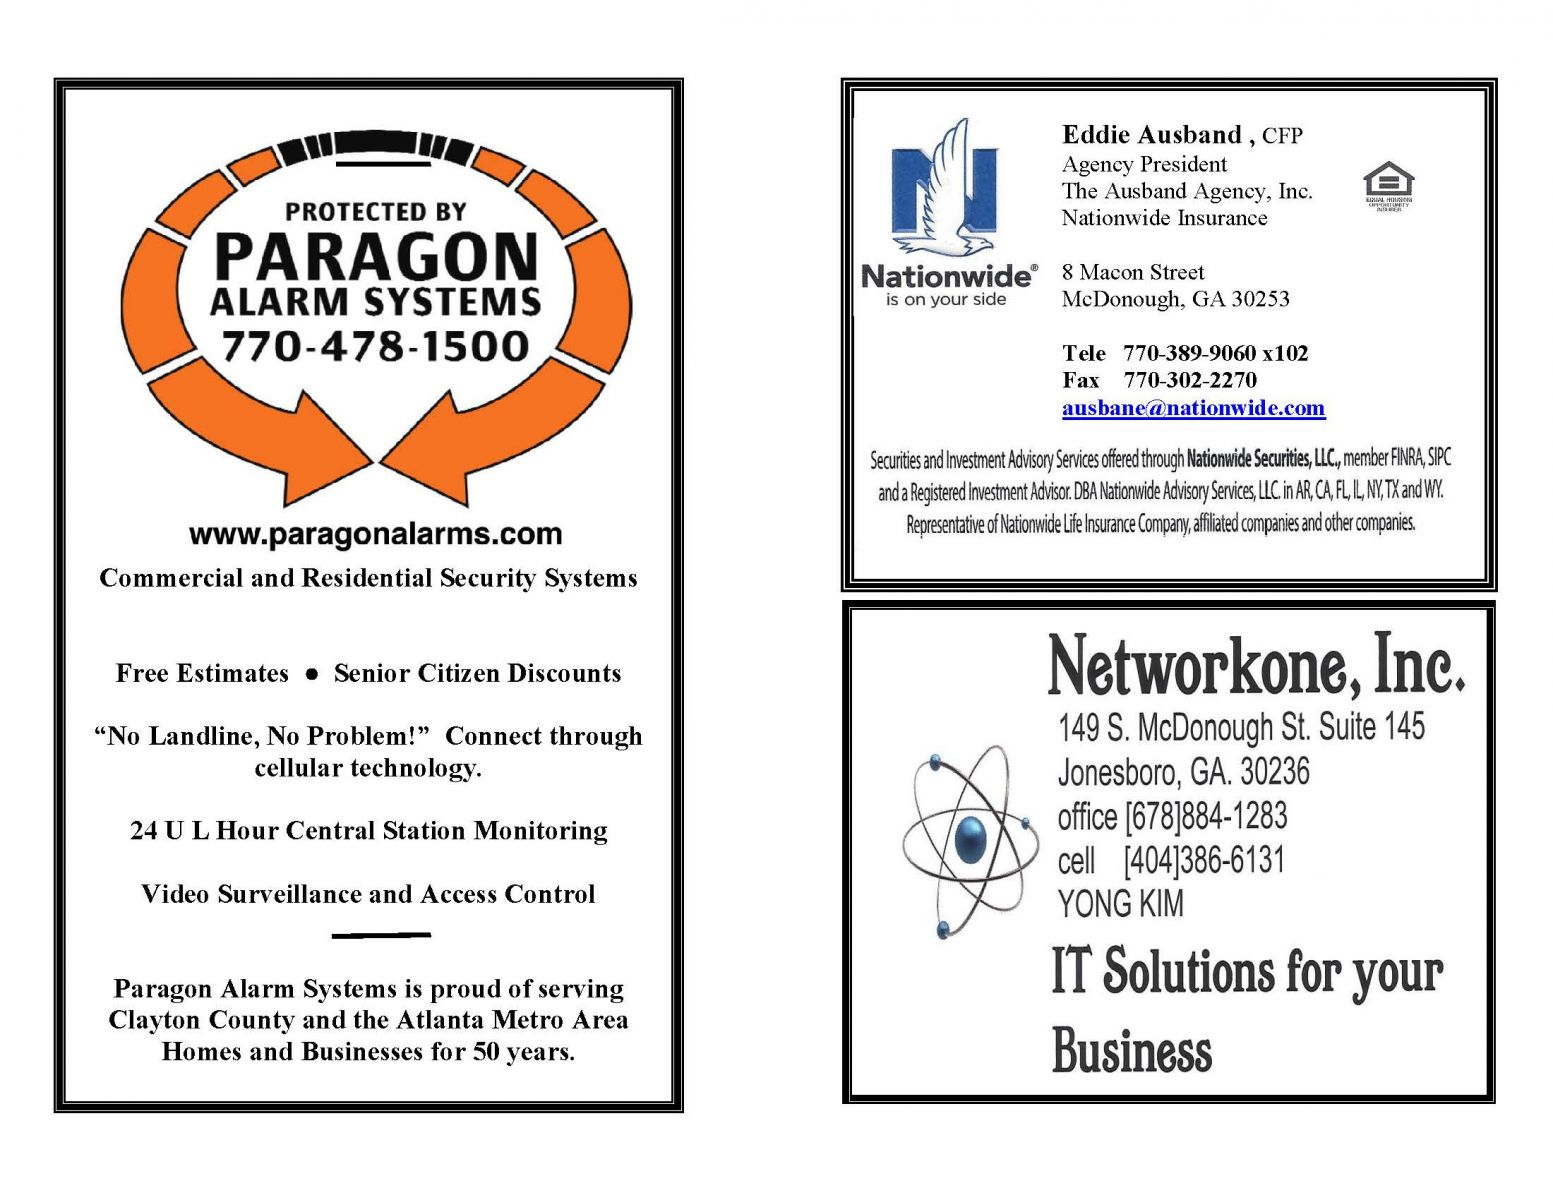 p.-2-Paragon-Eddie-Ausban-network-one